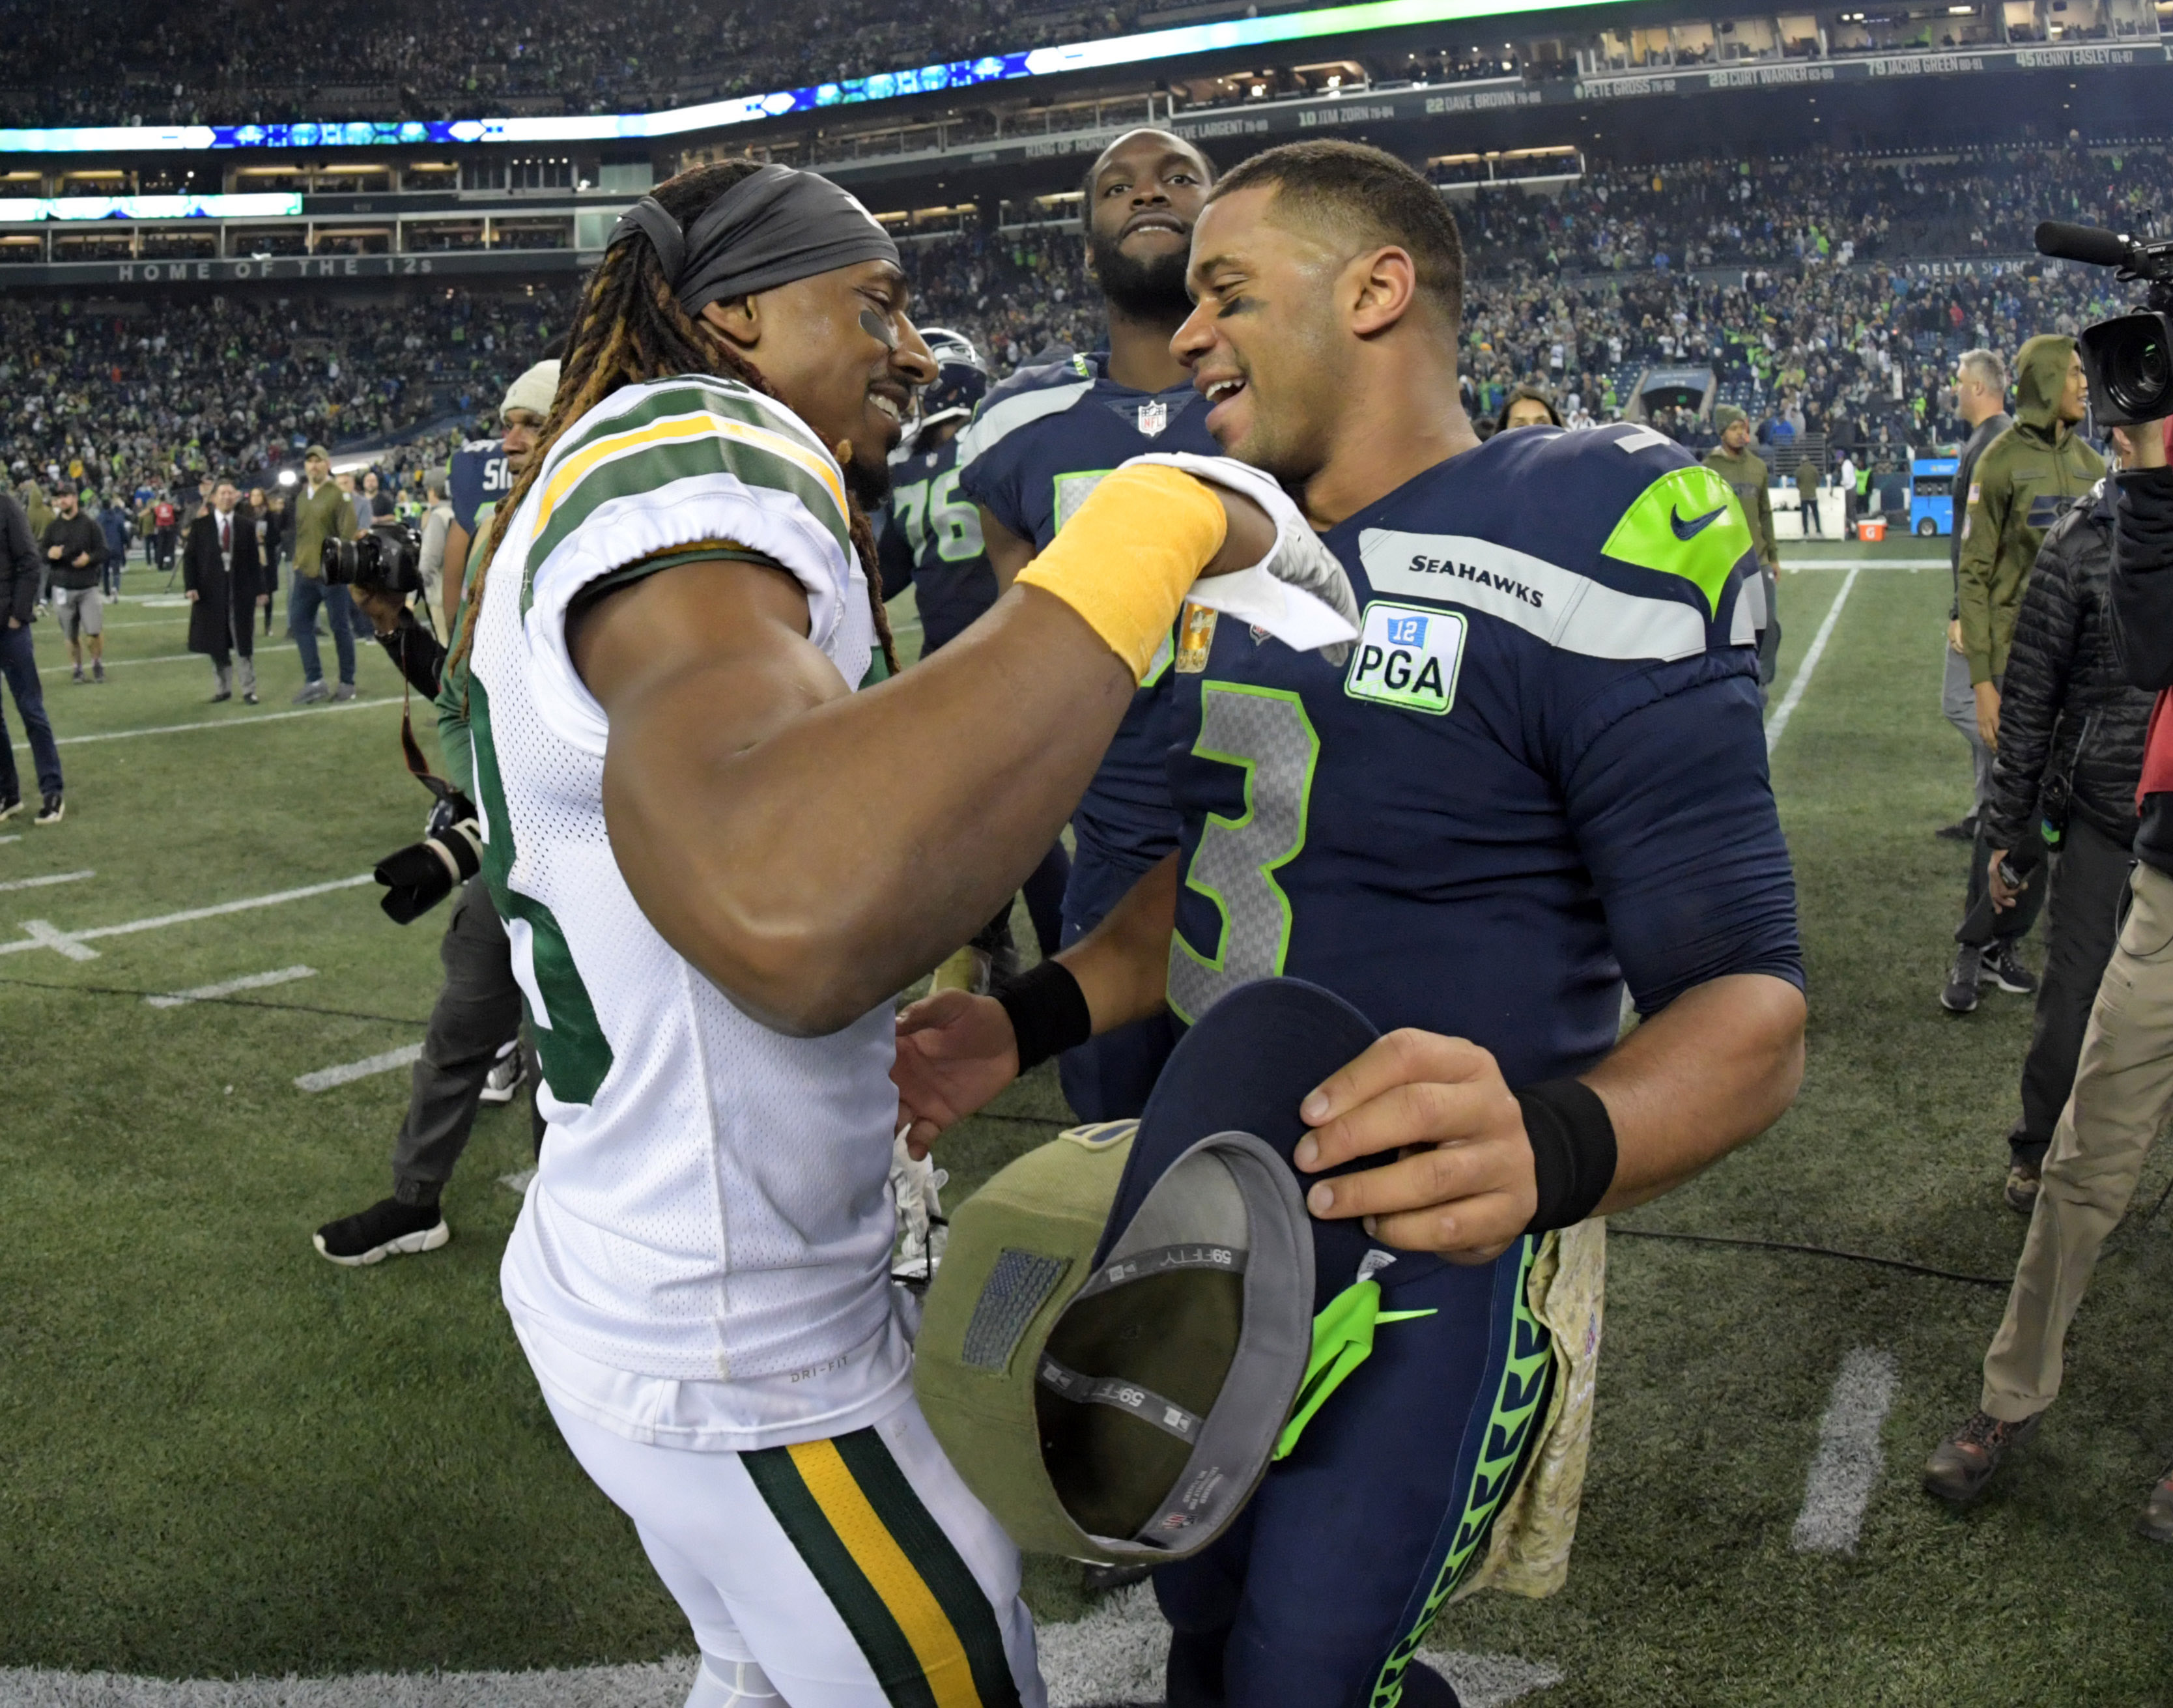 Packers-Seahawks TV ratings were highest in years for 'Thursday Night Football'